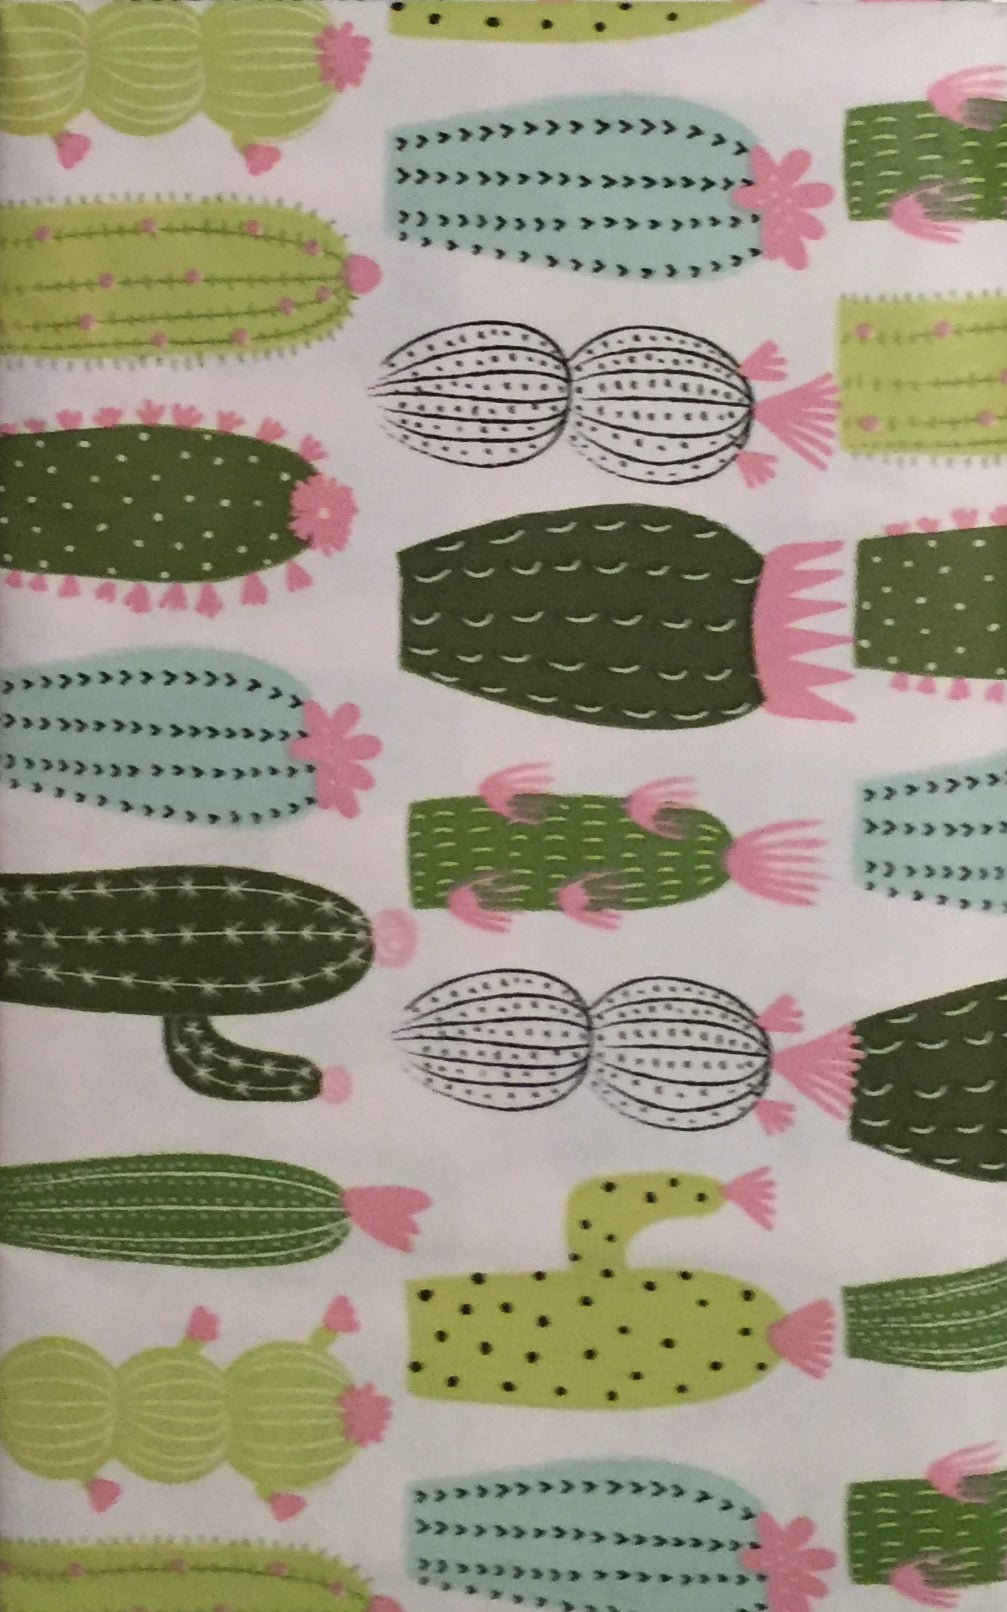 Elrene Vinyl Flannel Backed Tablecloth Green Pink 60 Inch Round Cactus Cacti